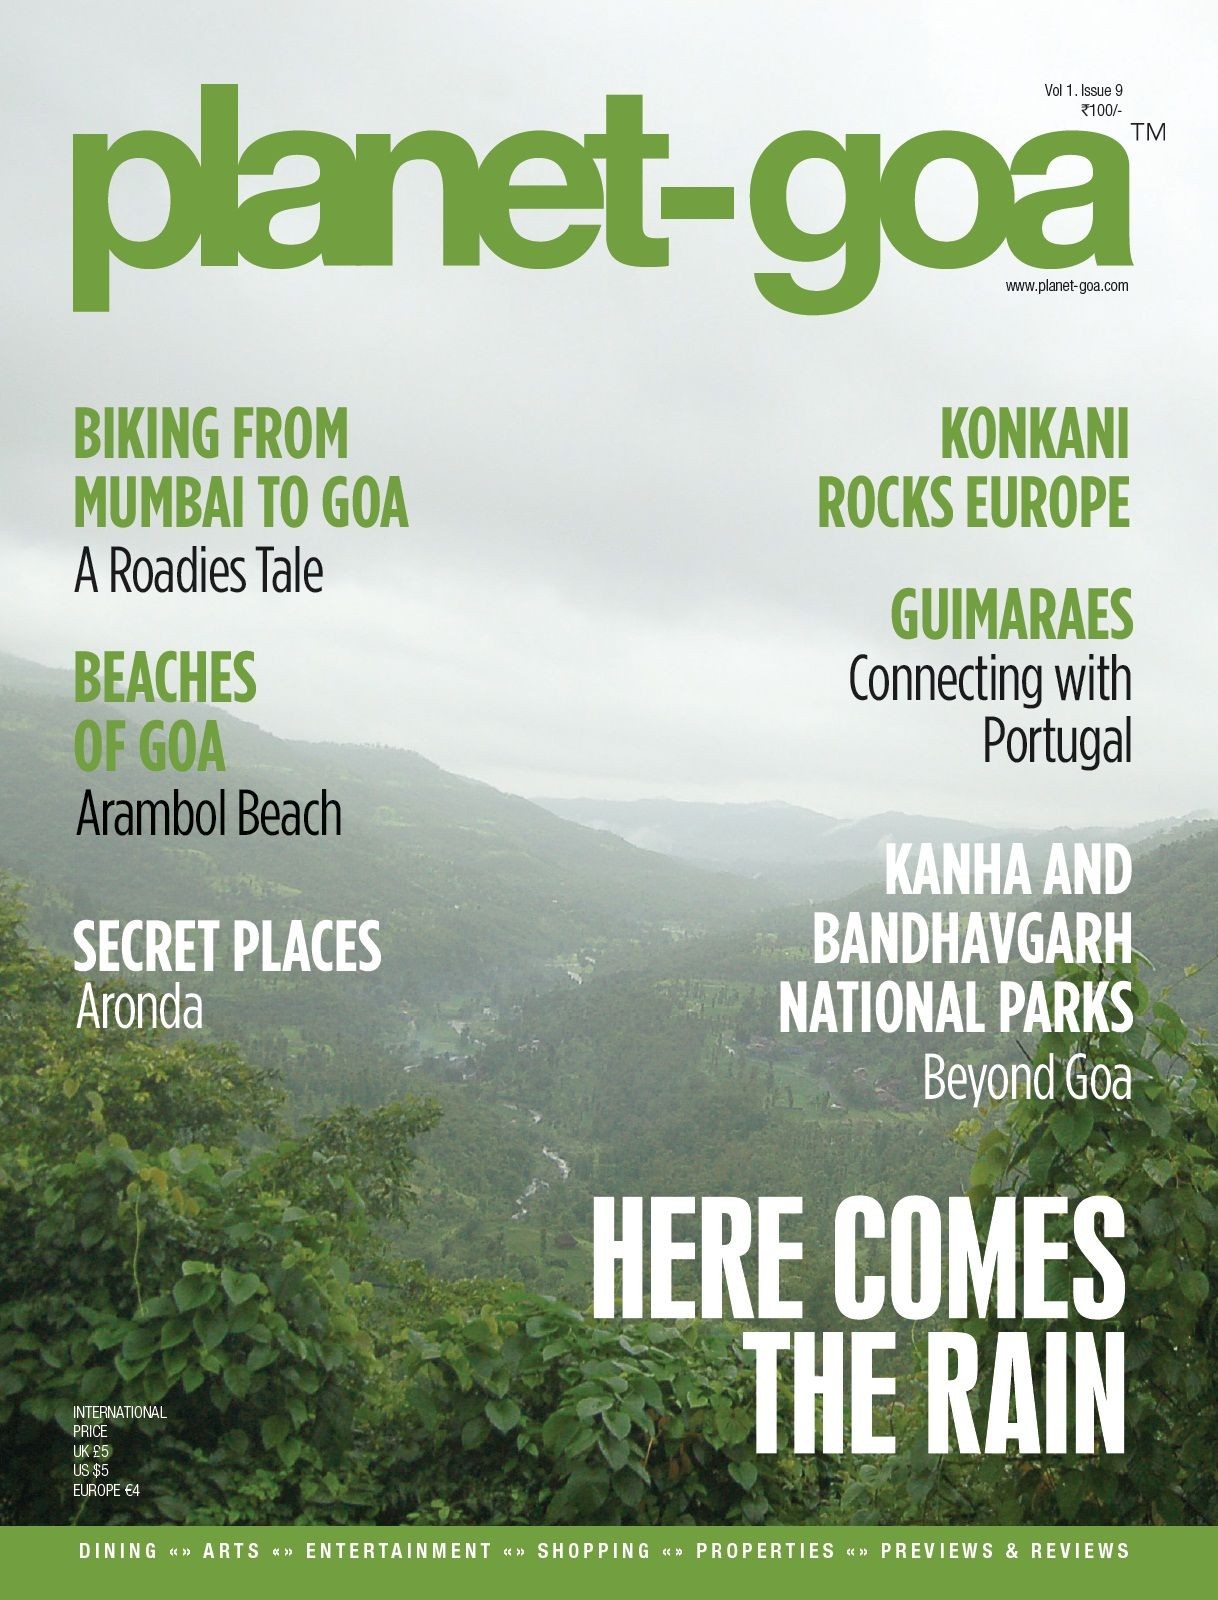 Know all about Goa and more with the latest issue of Goa's best travel magazine. Grab a copy of the Planet Goa magazine Volume 1 Issue 9 and discover the hidden wonders of Goa, visit the famous beaches of Goa, unravel the mystery of the monsoons in Goa and make the best of your vacation in Goa.